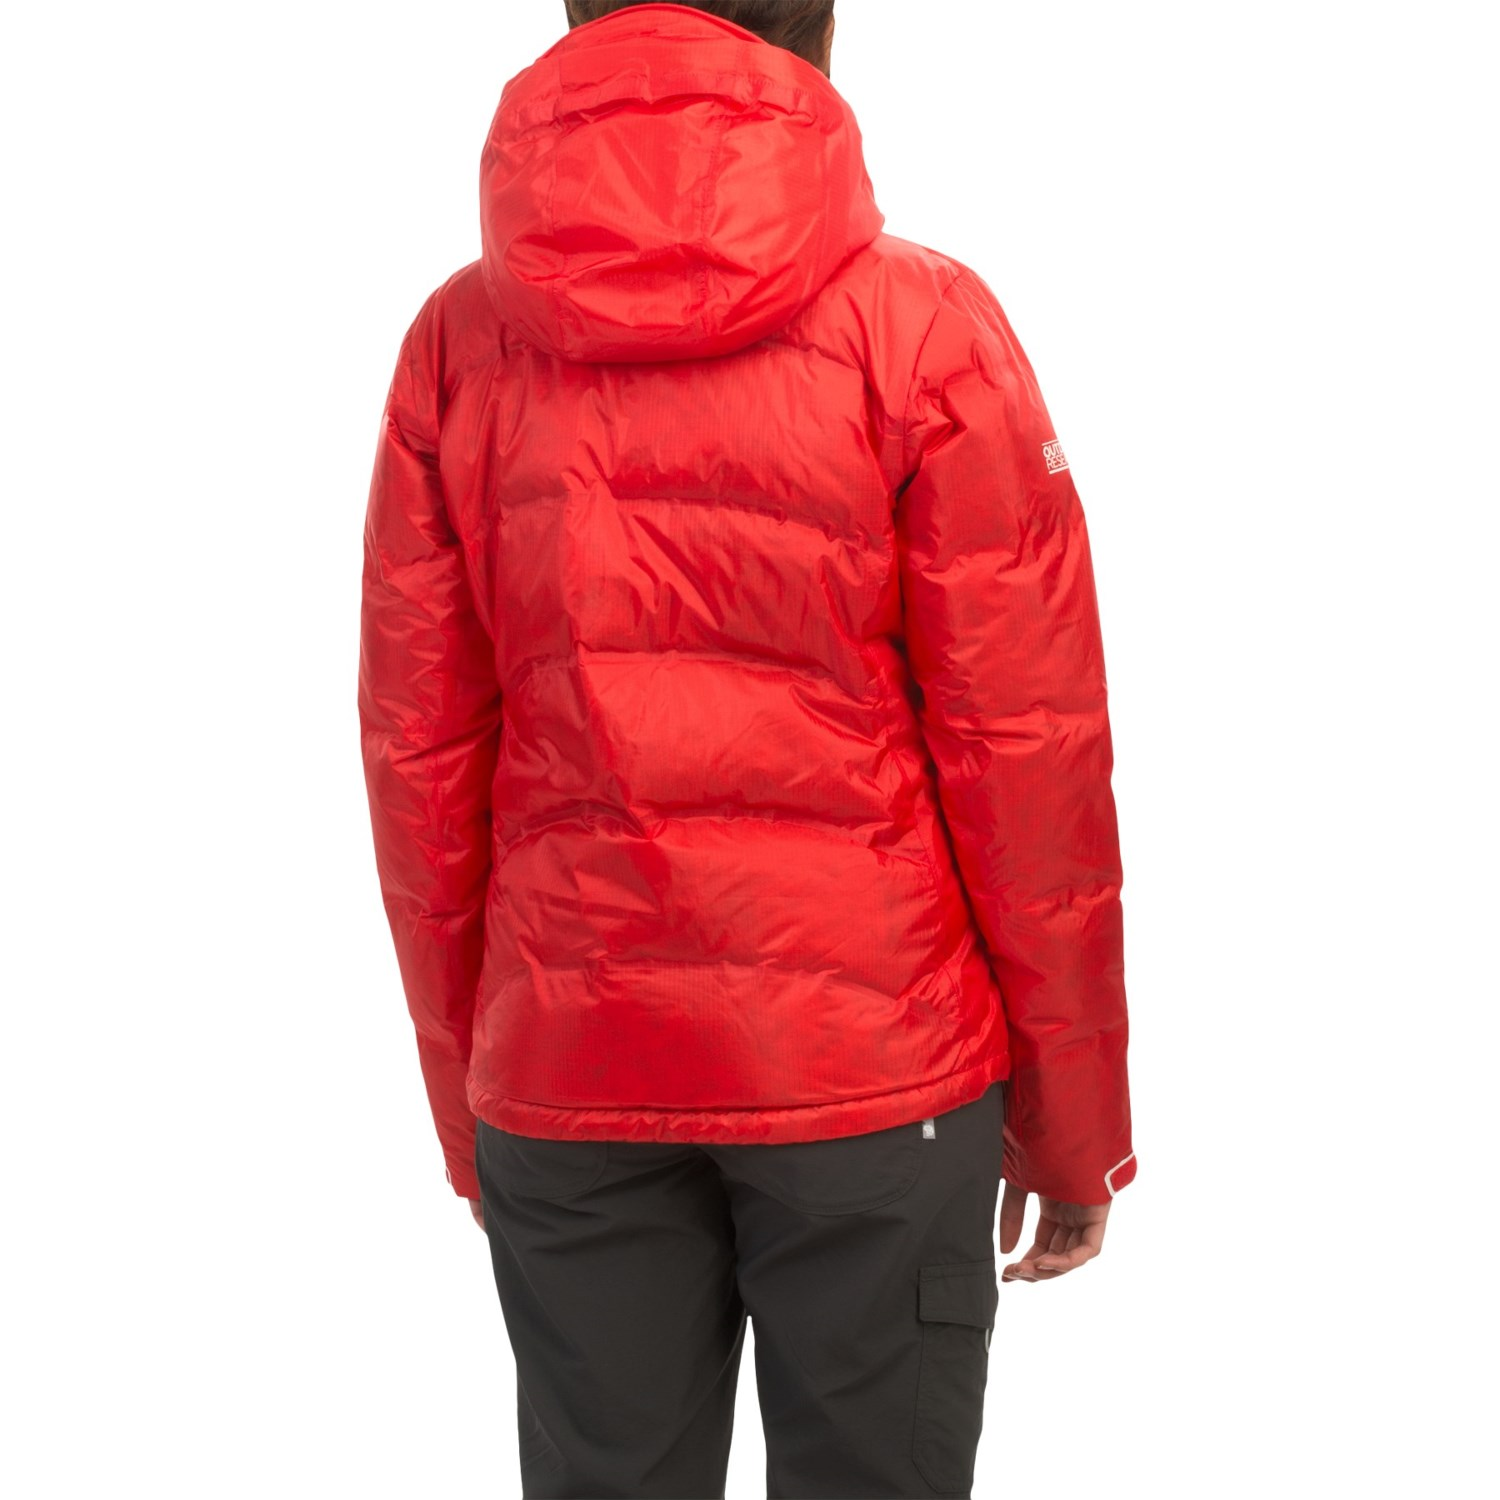 Outdoor Research Floodlight Down Jacket (For Women) - Save 62%